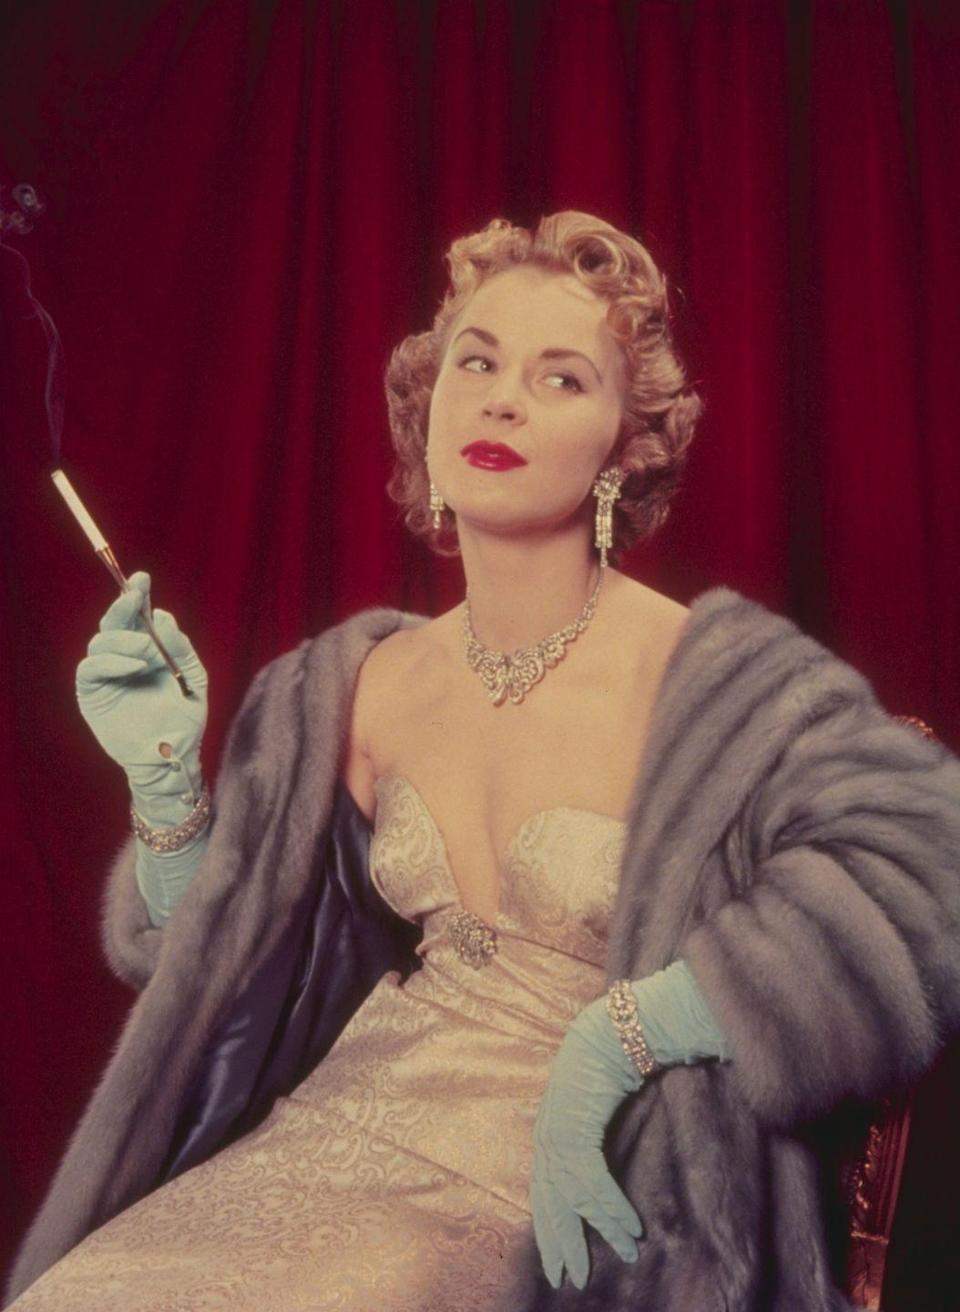 <p>A woman wearing an ornate evening gown with opera gloves and a pelted fur stole. </p>